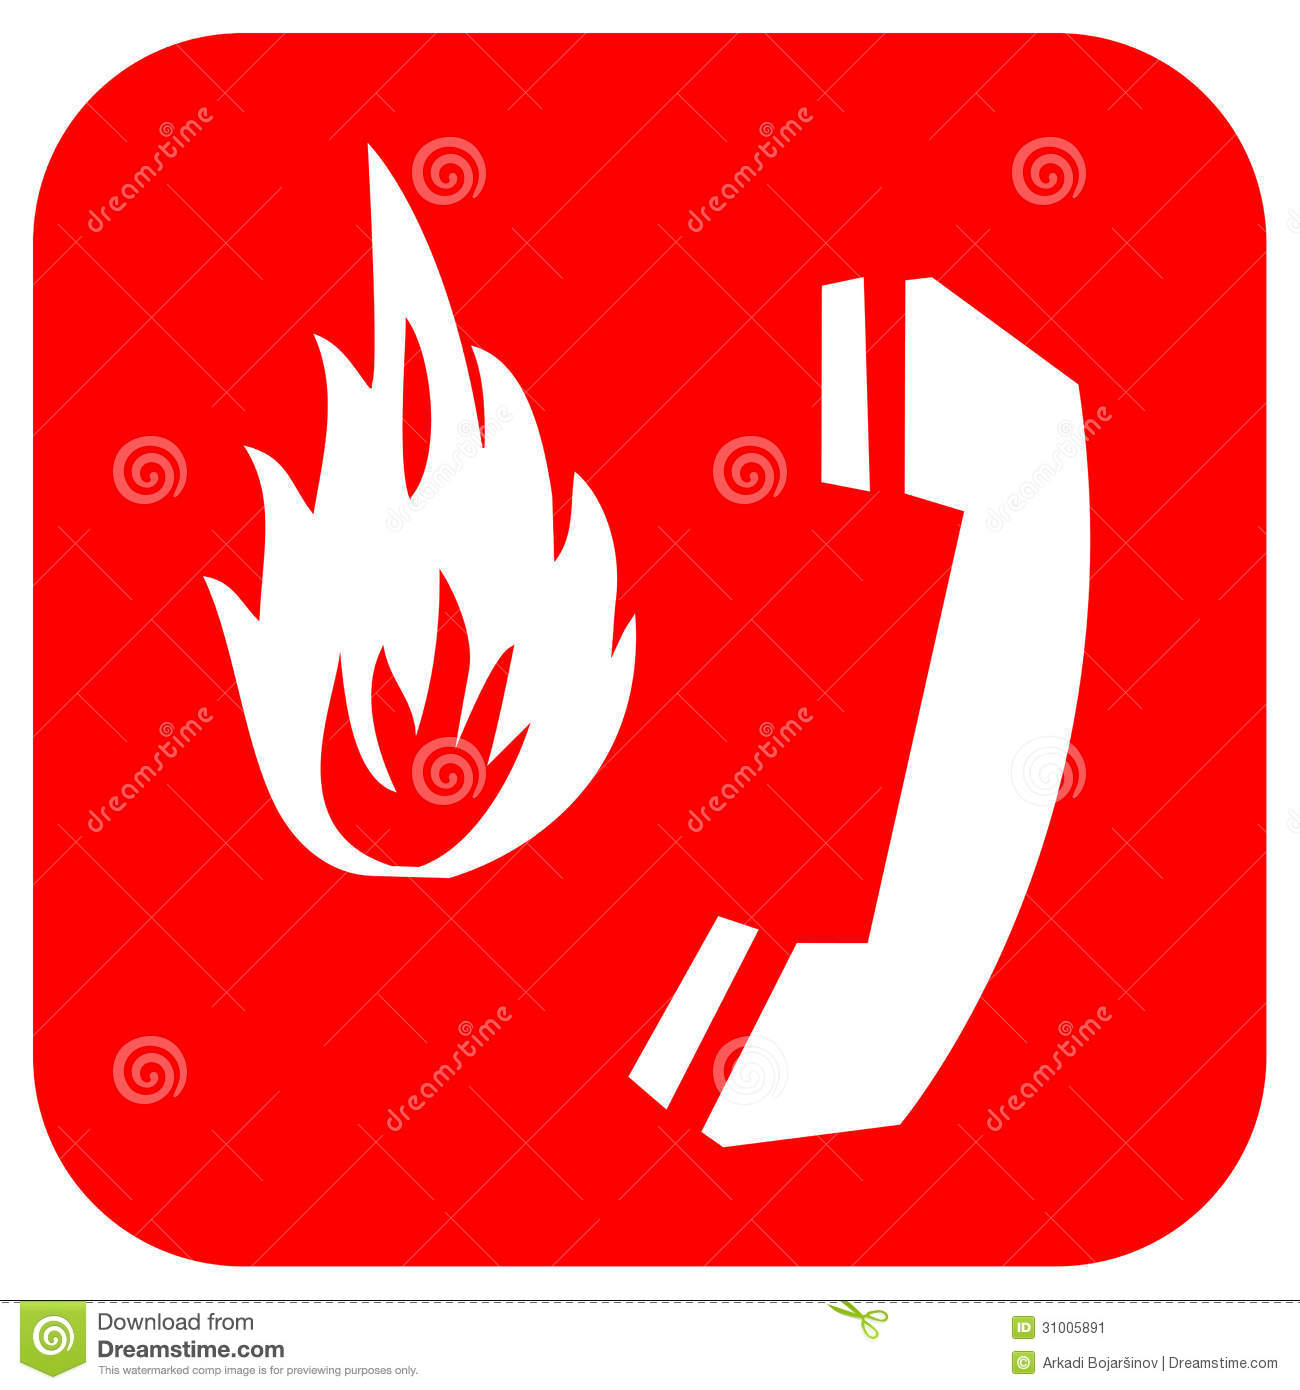 A 827 moreover Co Location moreover Watch also How To Install A Hardwired Smoke Alarm Part 7 as well Final Fire Exit Sign  250x150mm Rigid. on smoke alarm symbol